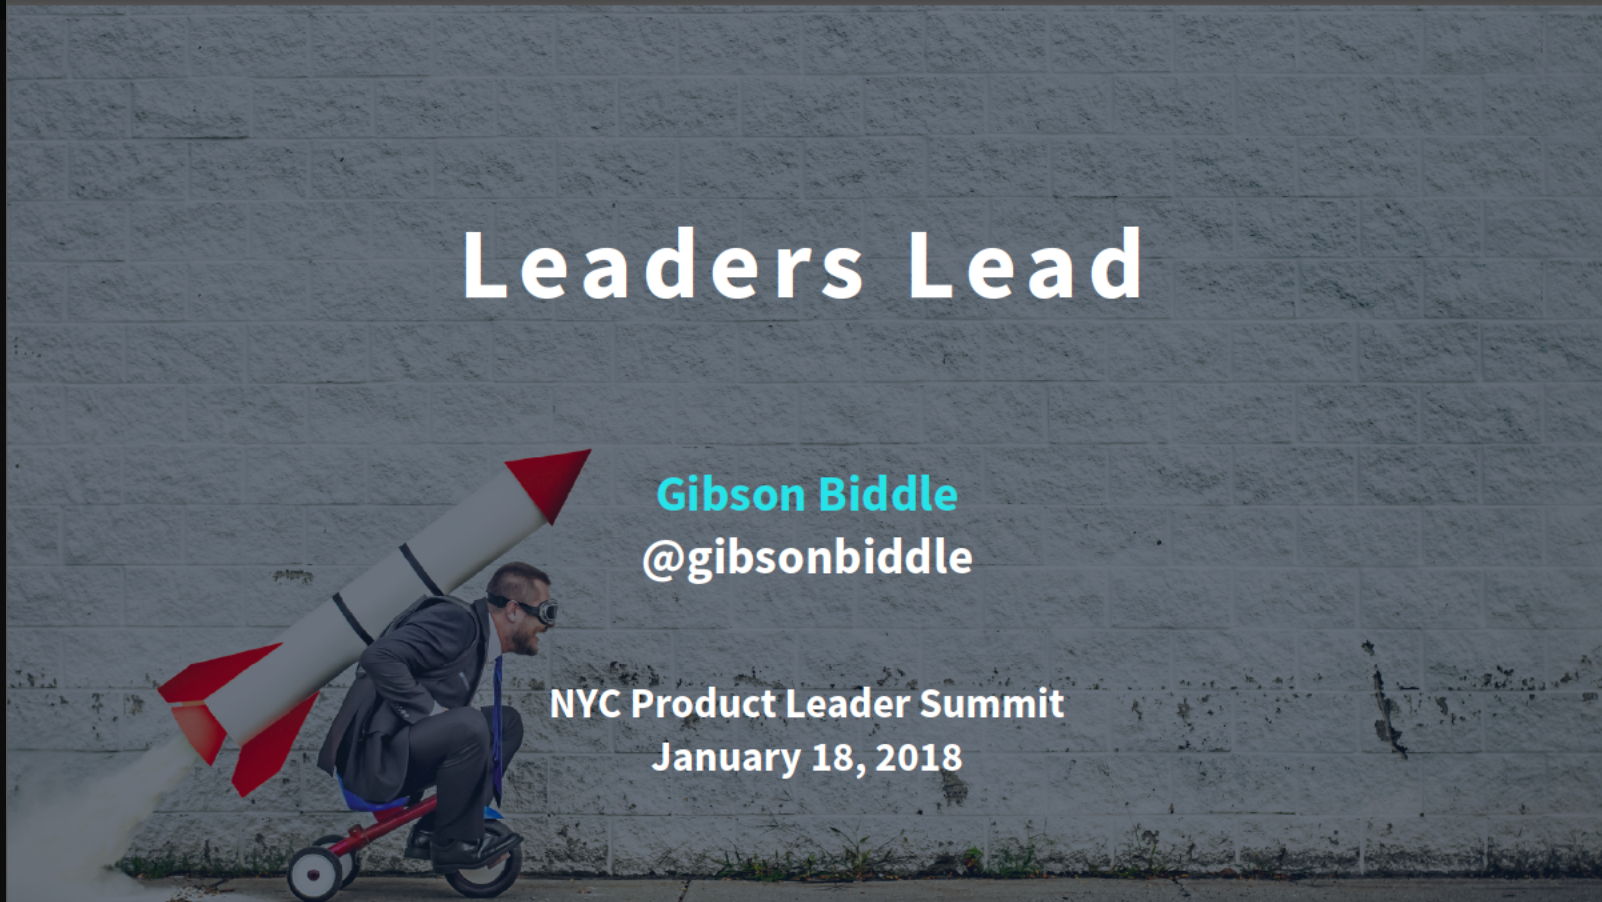 Gibson Biddle: Leaders Lead